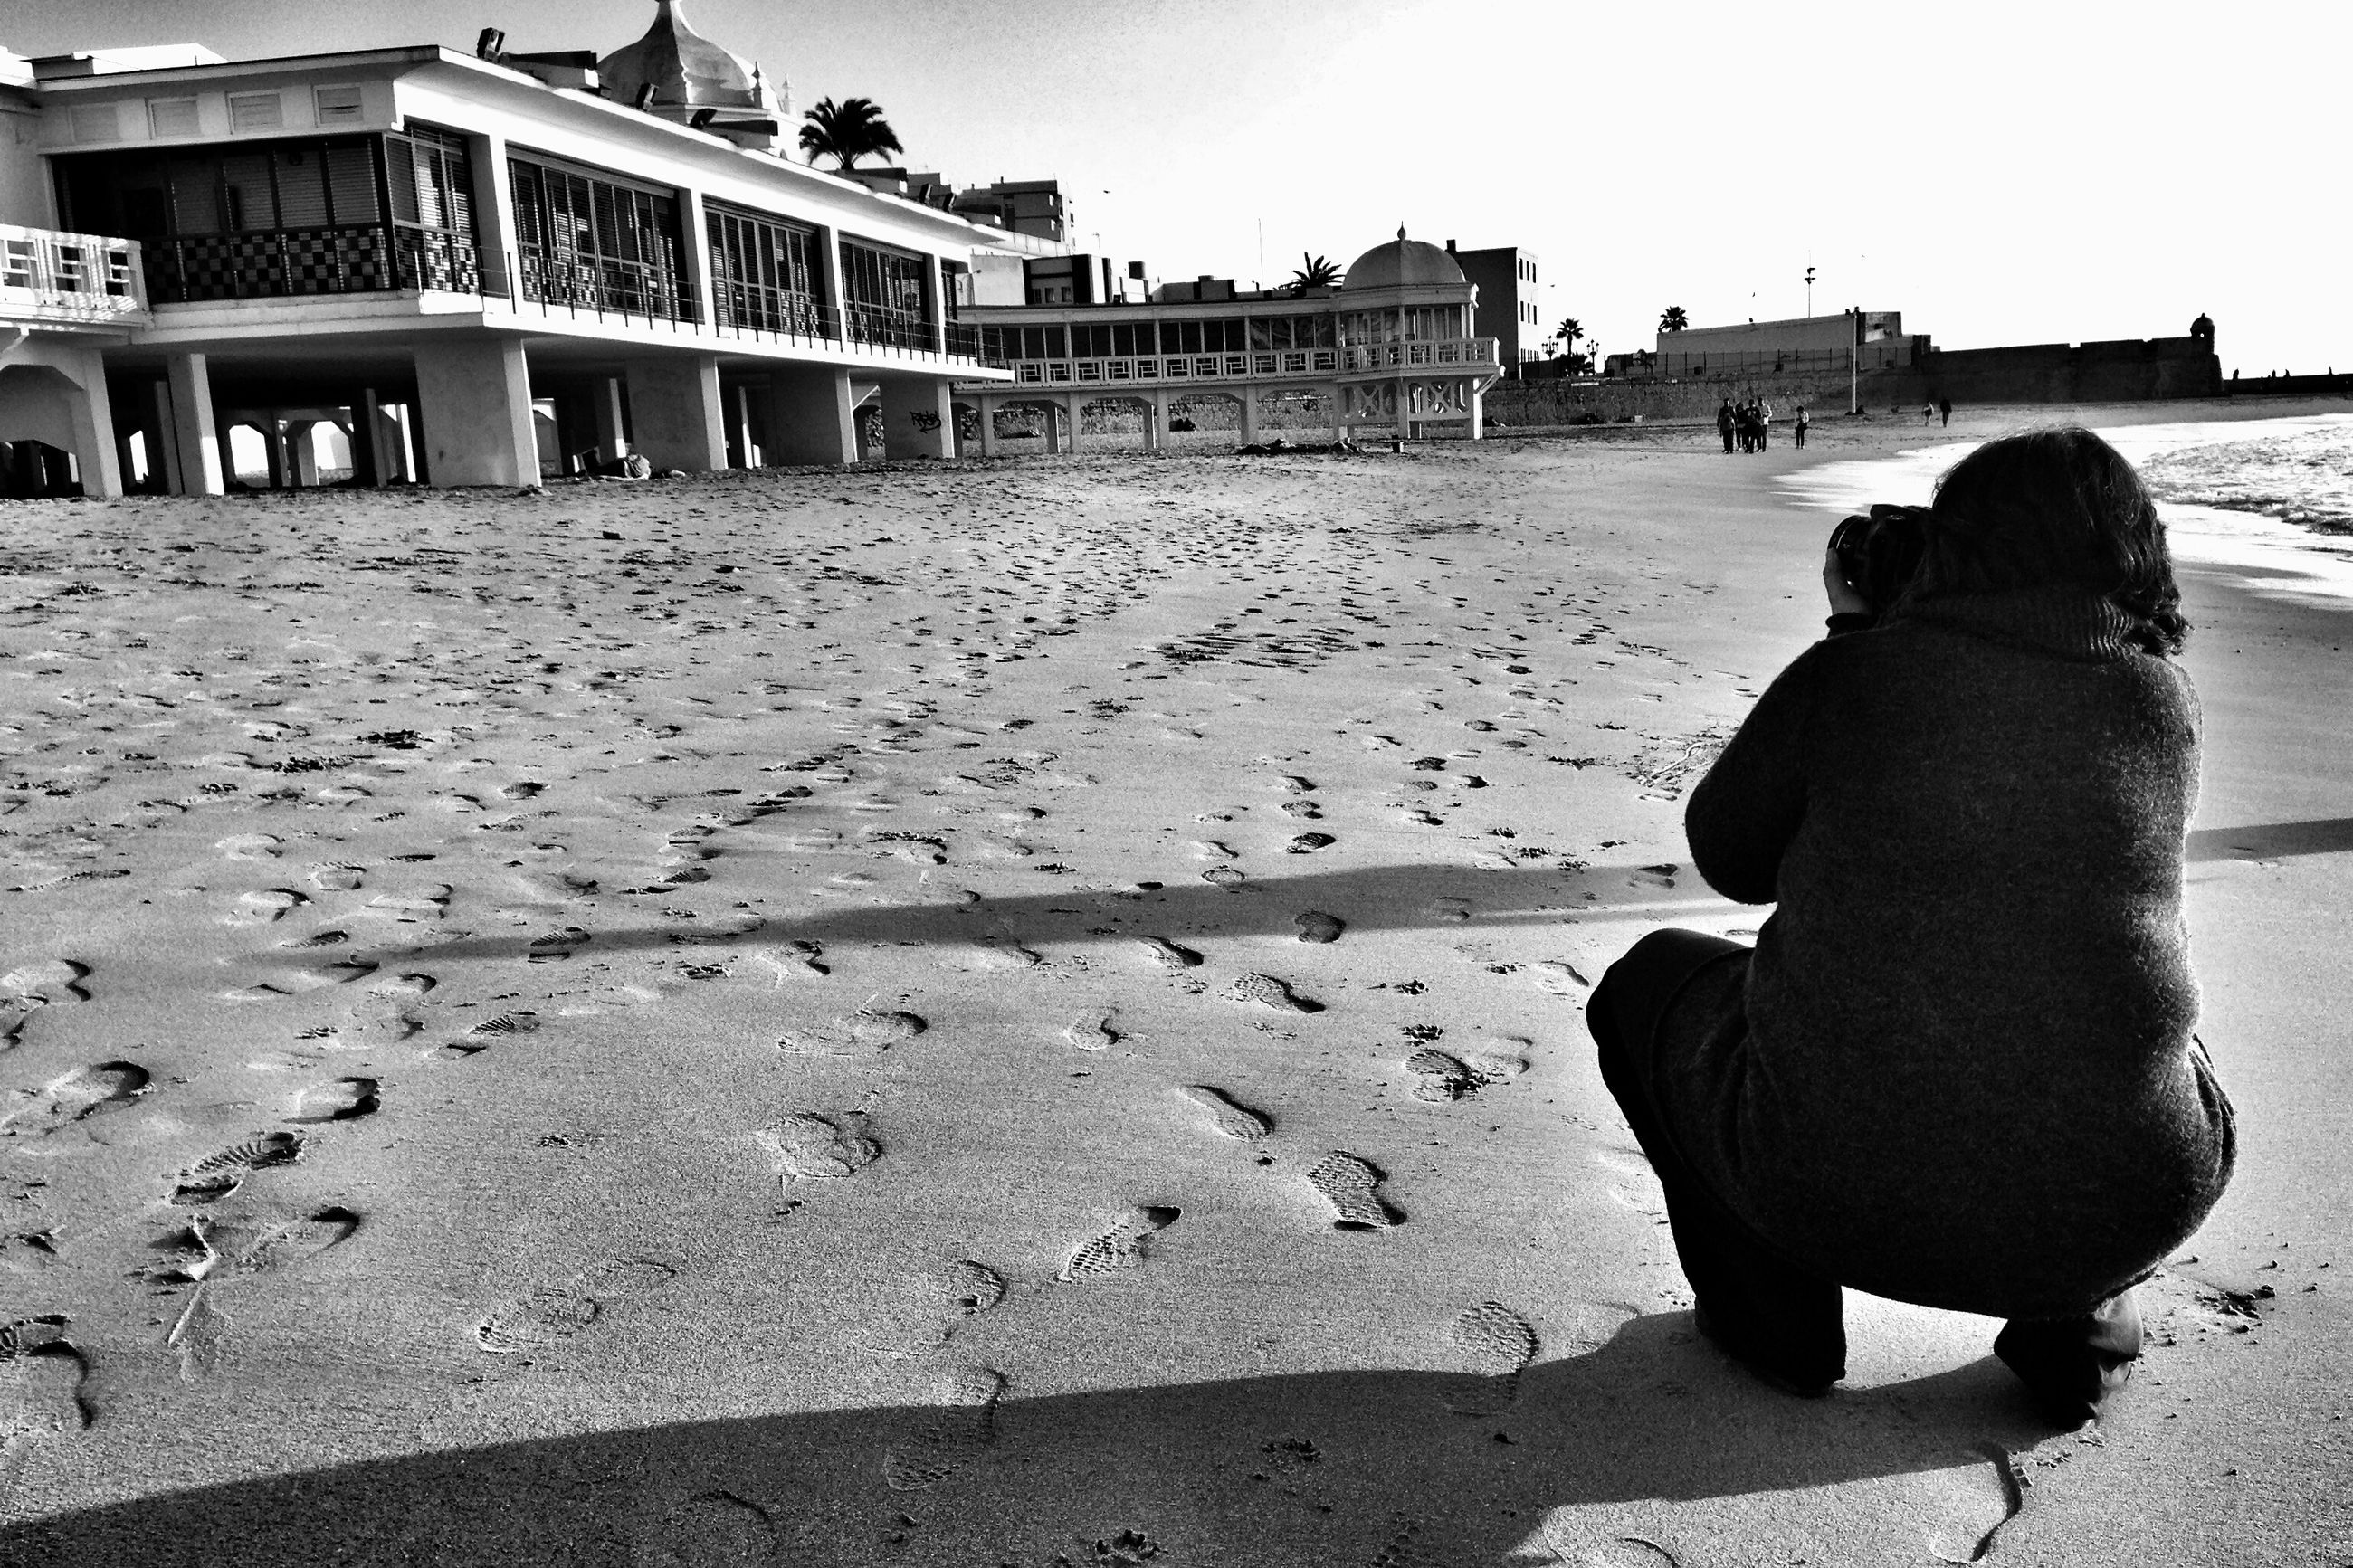 beach, lifestyles, architecture, leisure activity, built structure, sea, building exterior, sand, person, shore, rear view, men, sky, water, sunlight, shadow, standing, relaxation